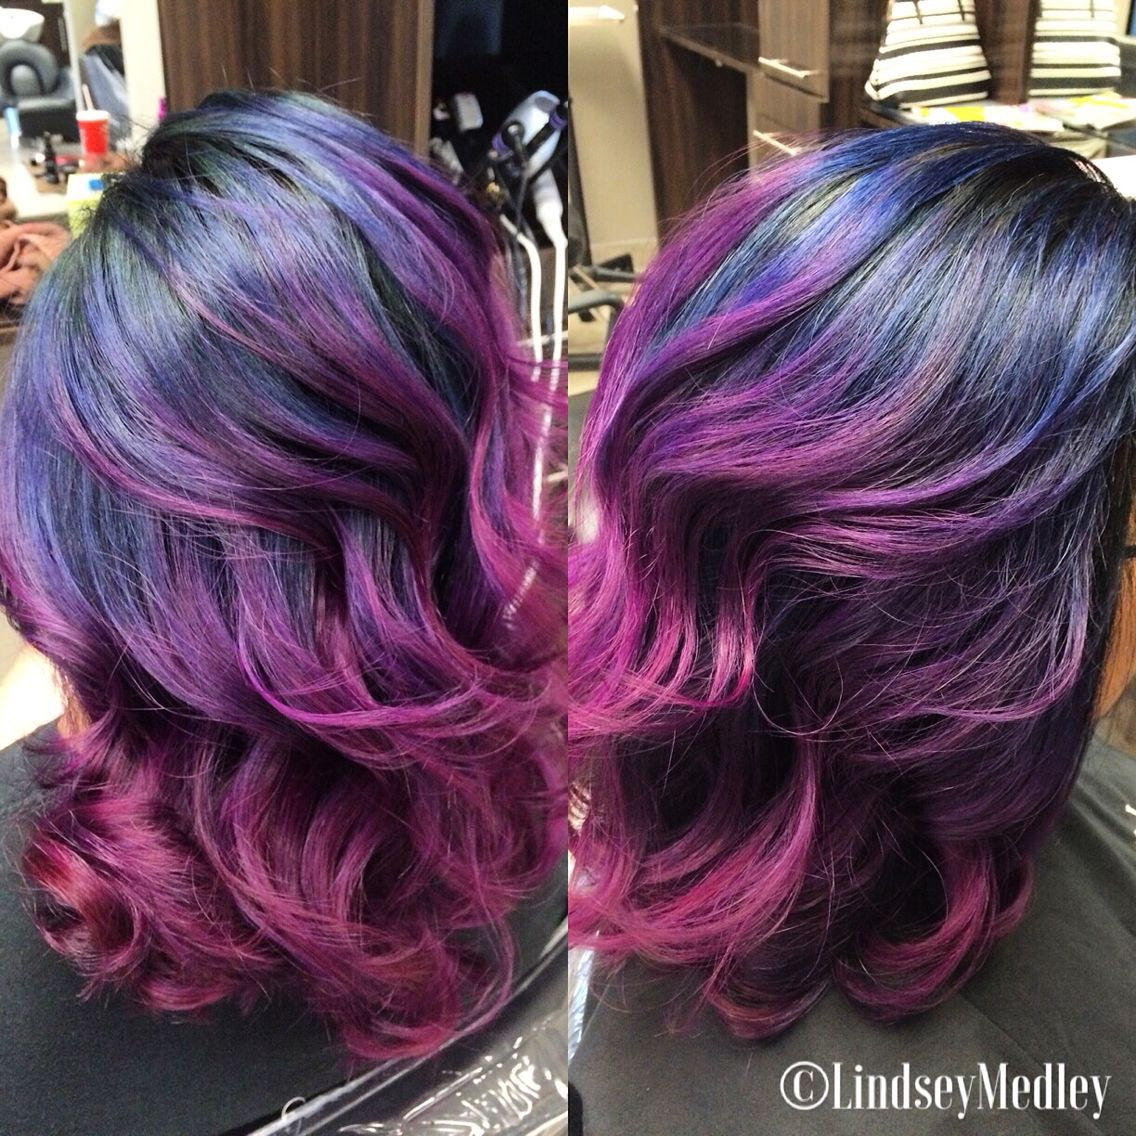 Multicolored Ombre Using Joico S Color Intensity Colors By Lindsey Medley At J Randall Salon In